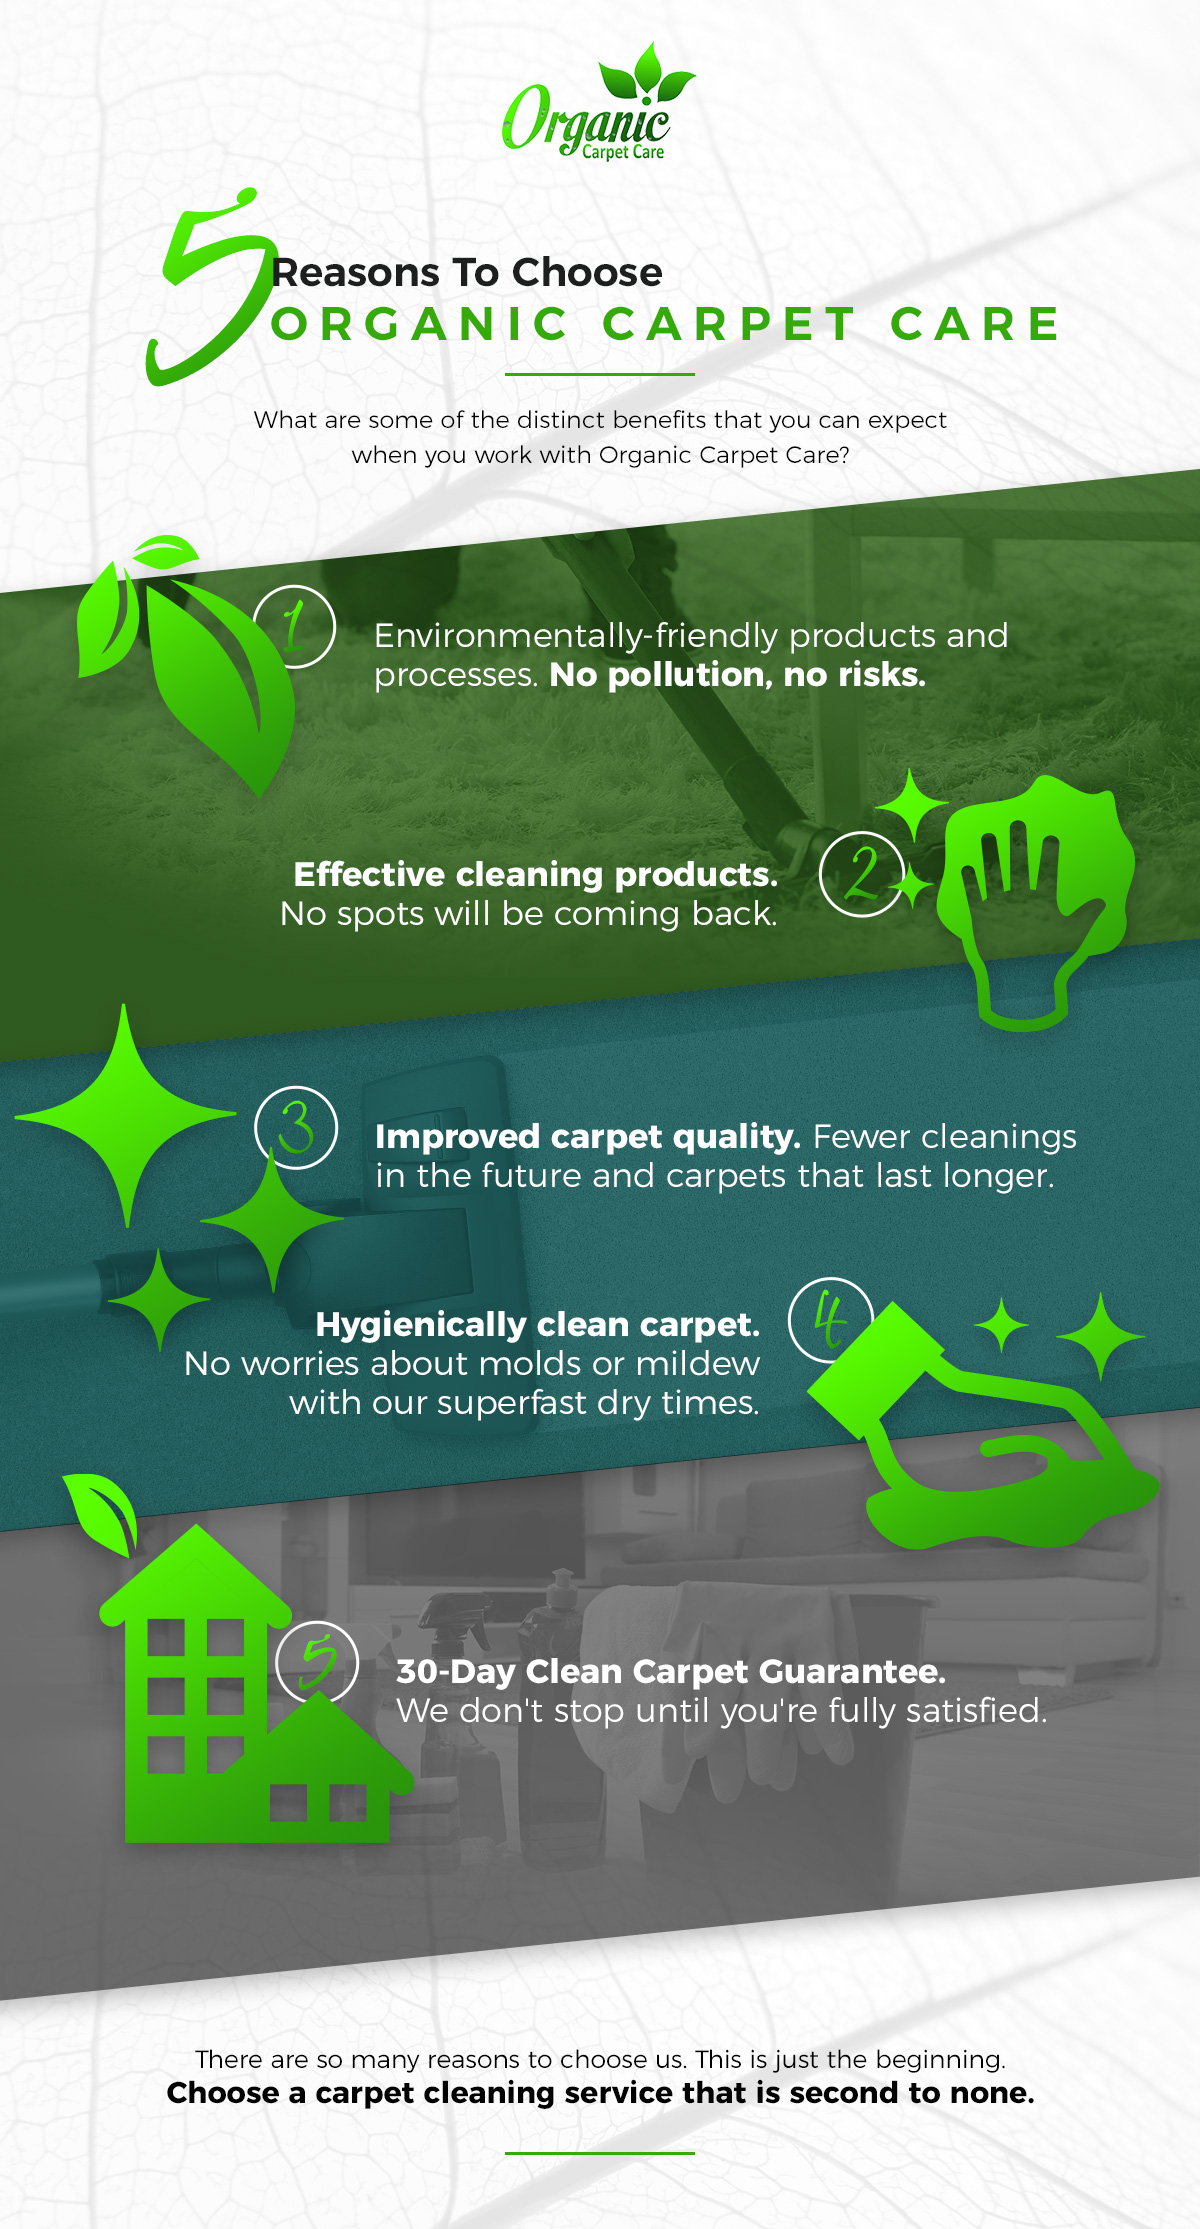 5 Reasons To Choose Organic Carpet Care infographic